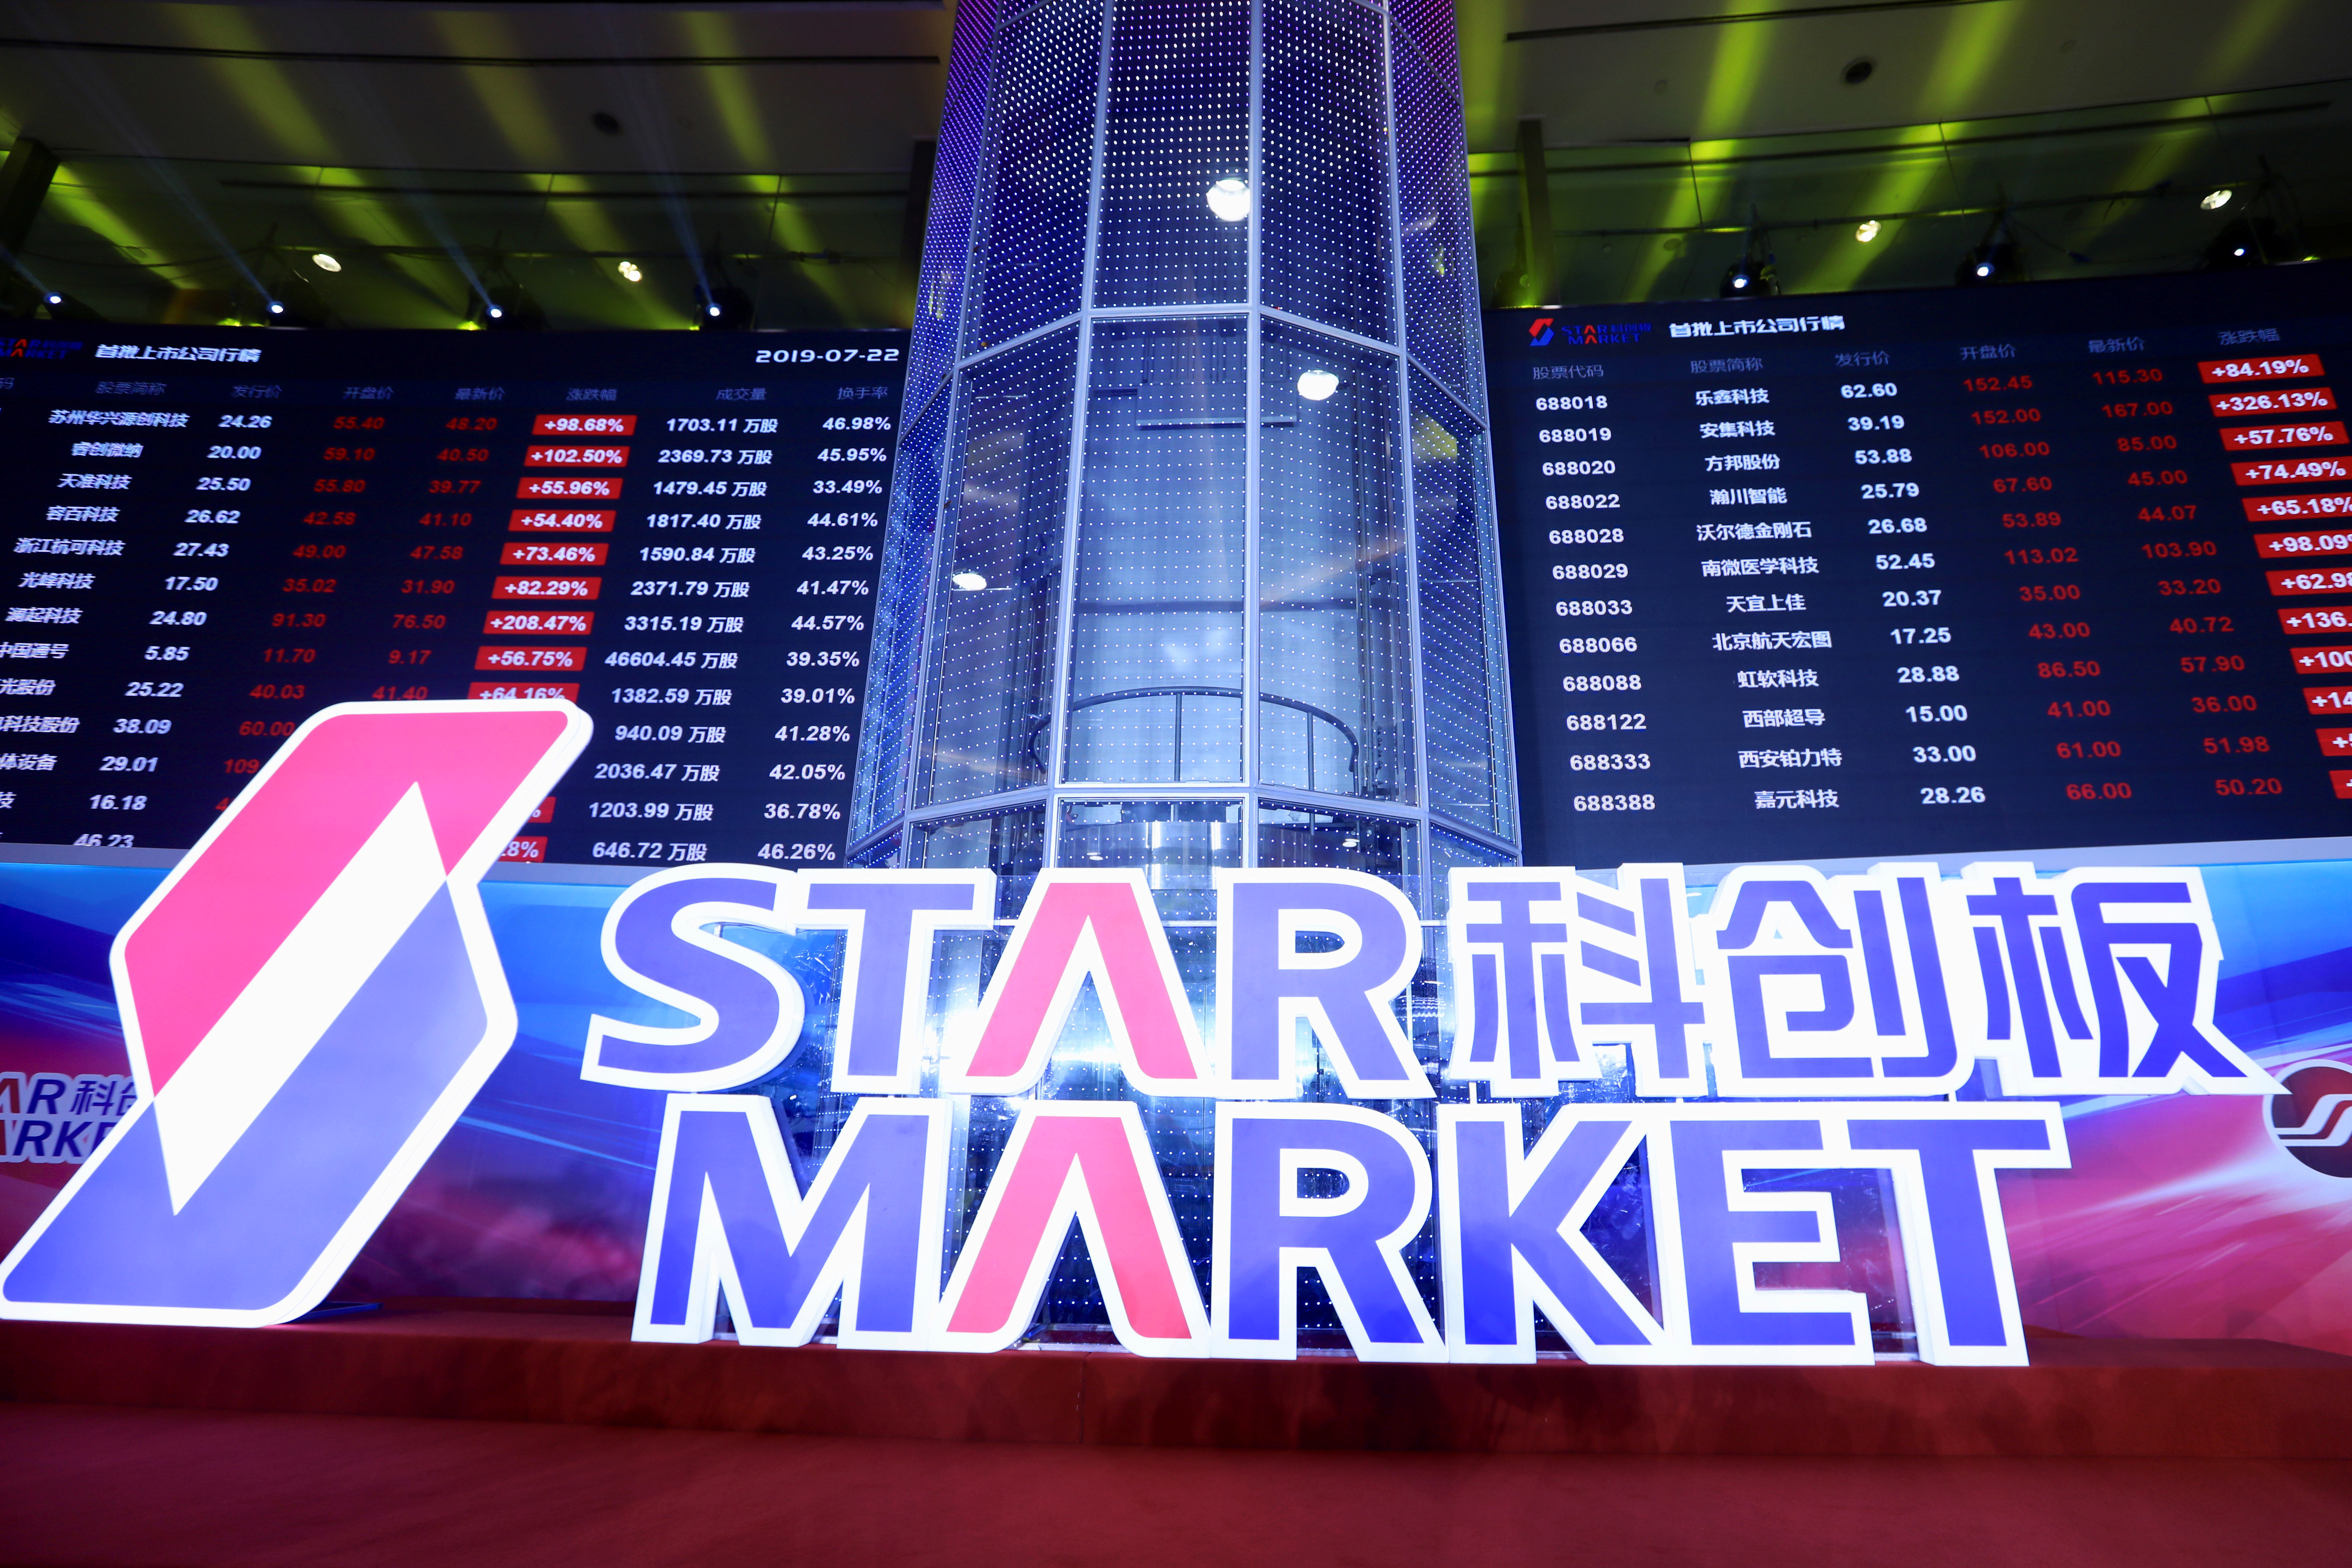 A sign for STAR Market, China's new Nasdaq-style tech board, is seen after the listing ceremony of the first batch of companies at Shanghai Stock Exchange (SSE) in Shanghai, China July 22, 2019.  REUTERS/Stringer